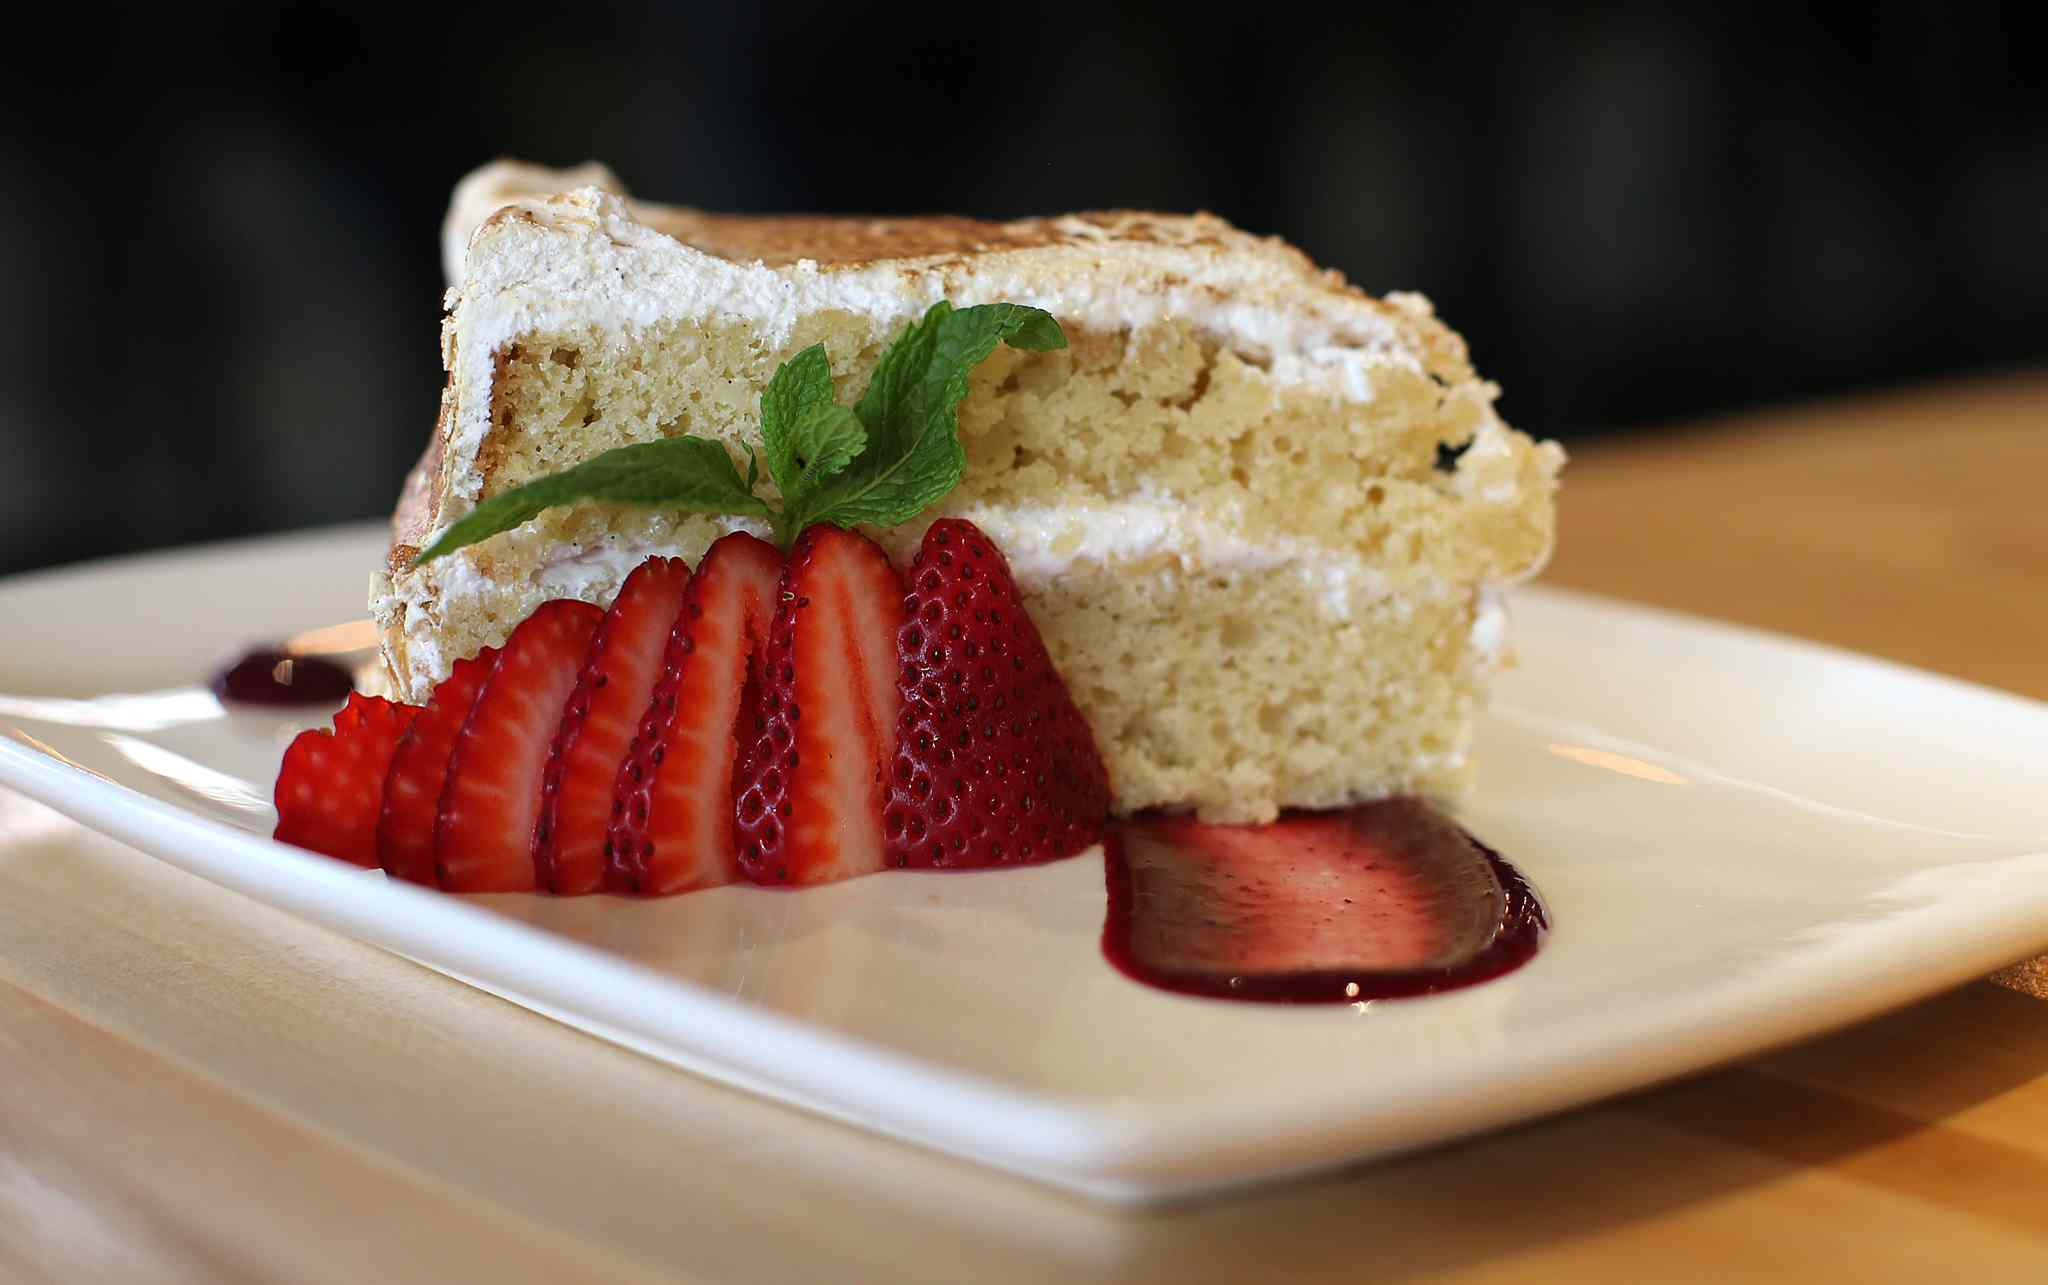 Coconut cake at the Cornerstone Bar and Restaurant